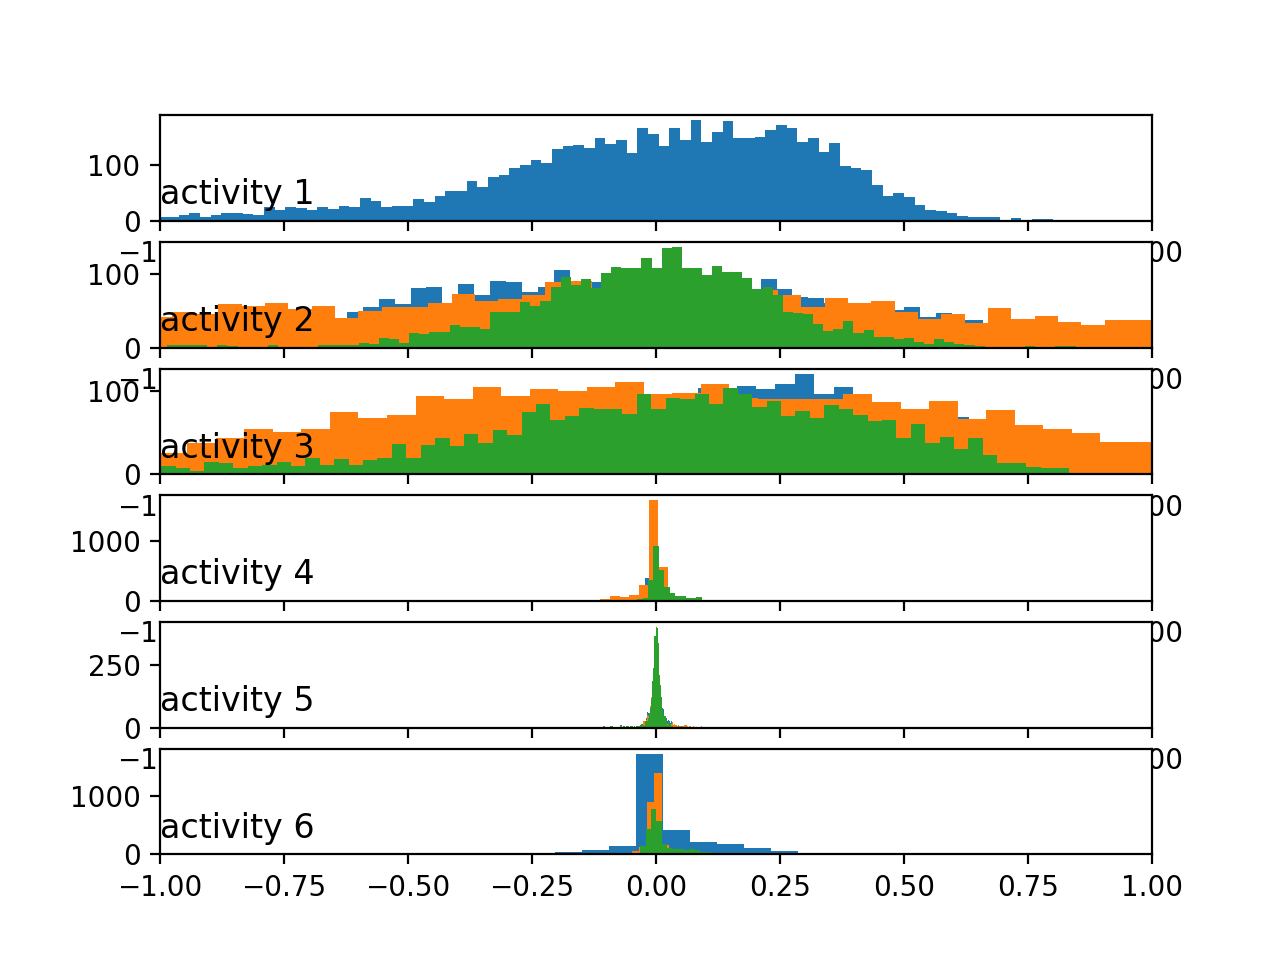 Histograms of the body gyroscope data by activity